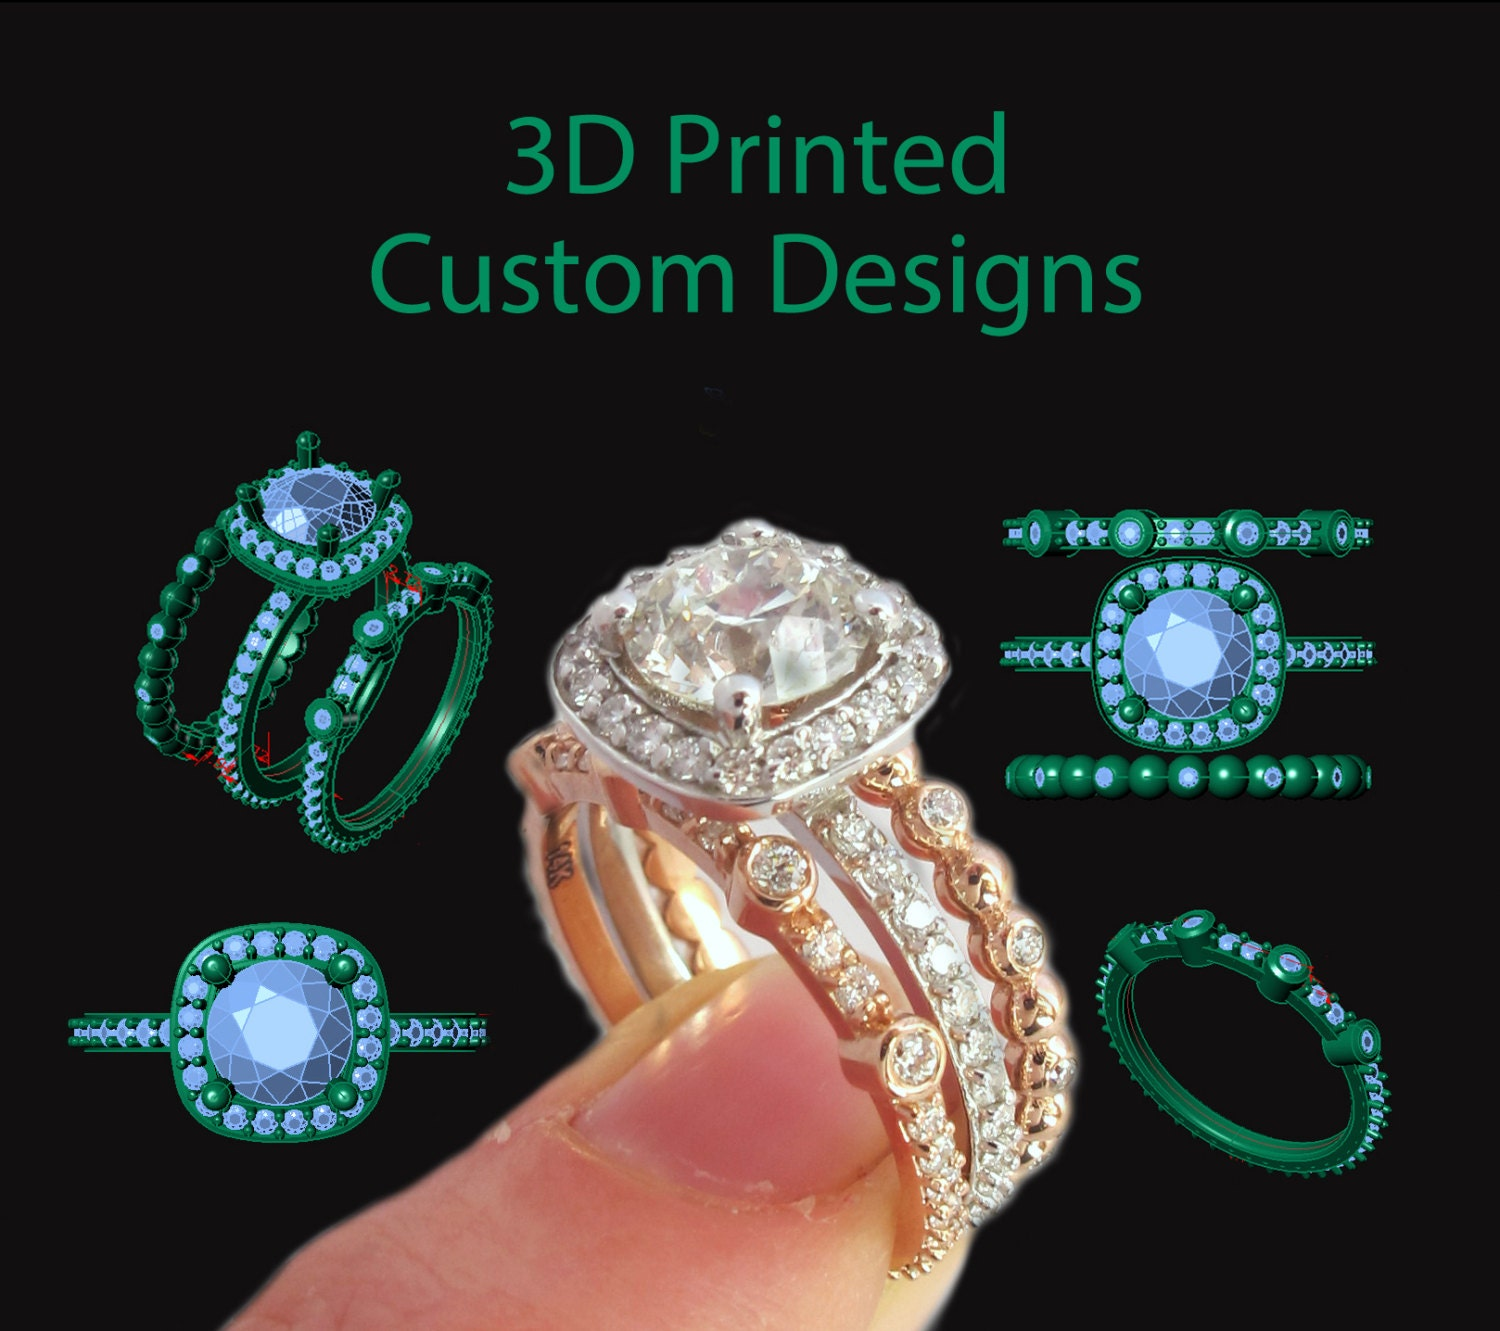 printed own diamond solitaire custom master il print cad fullxfull gold bnlk your rings listing wedding designs ring rickson engagement